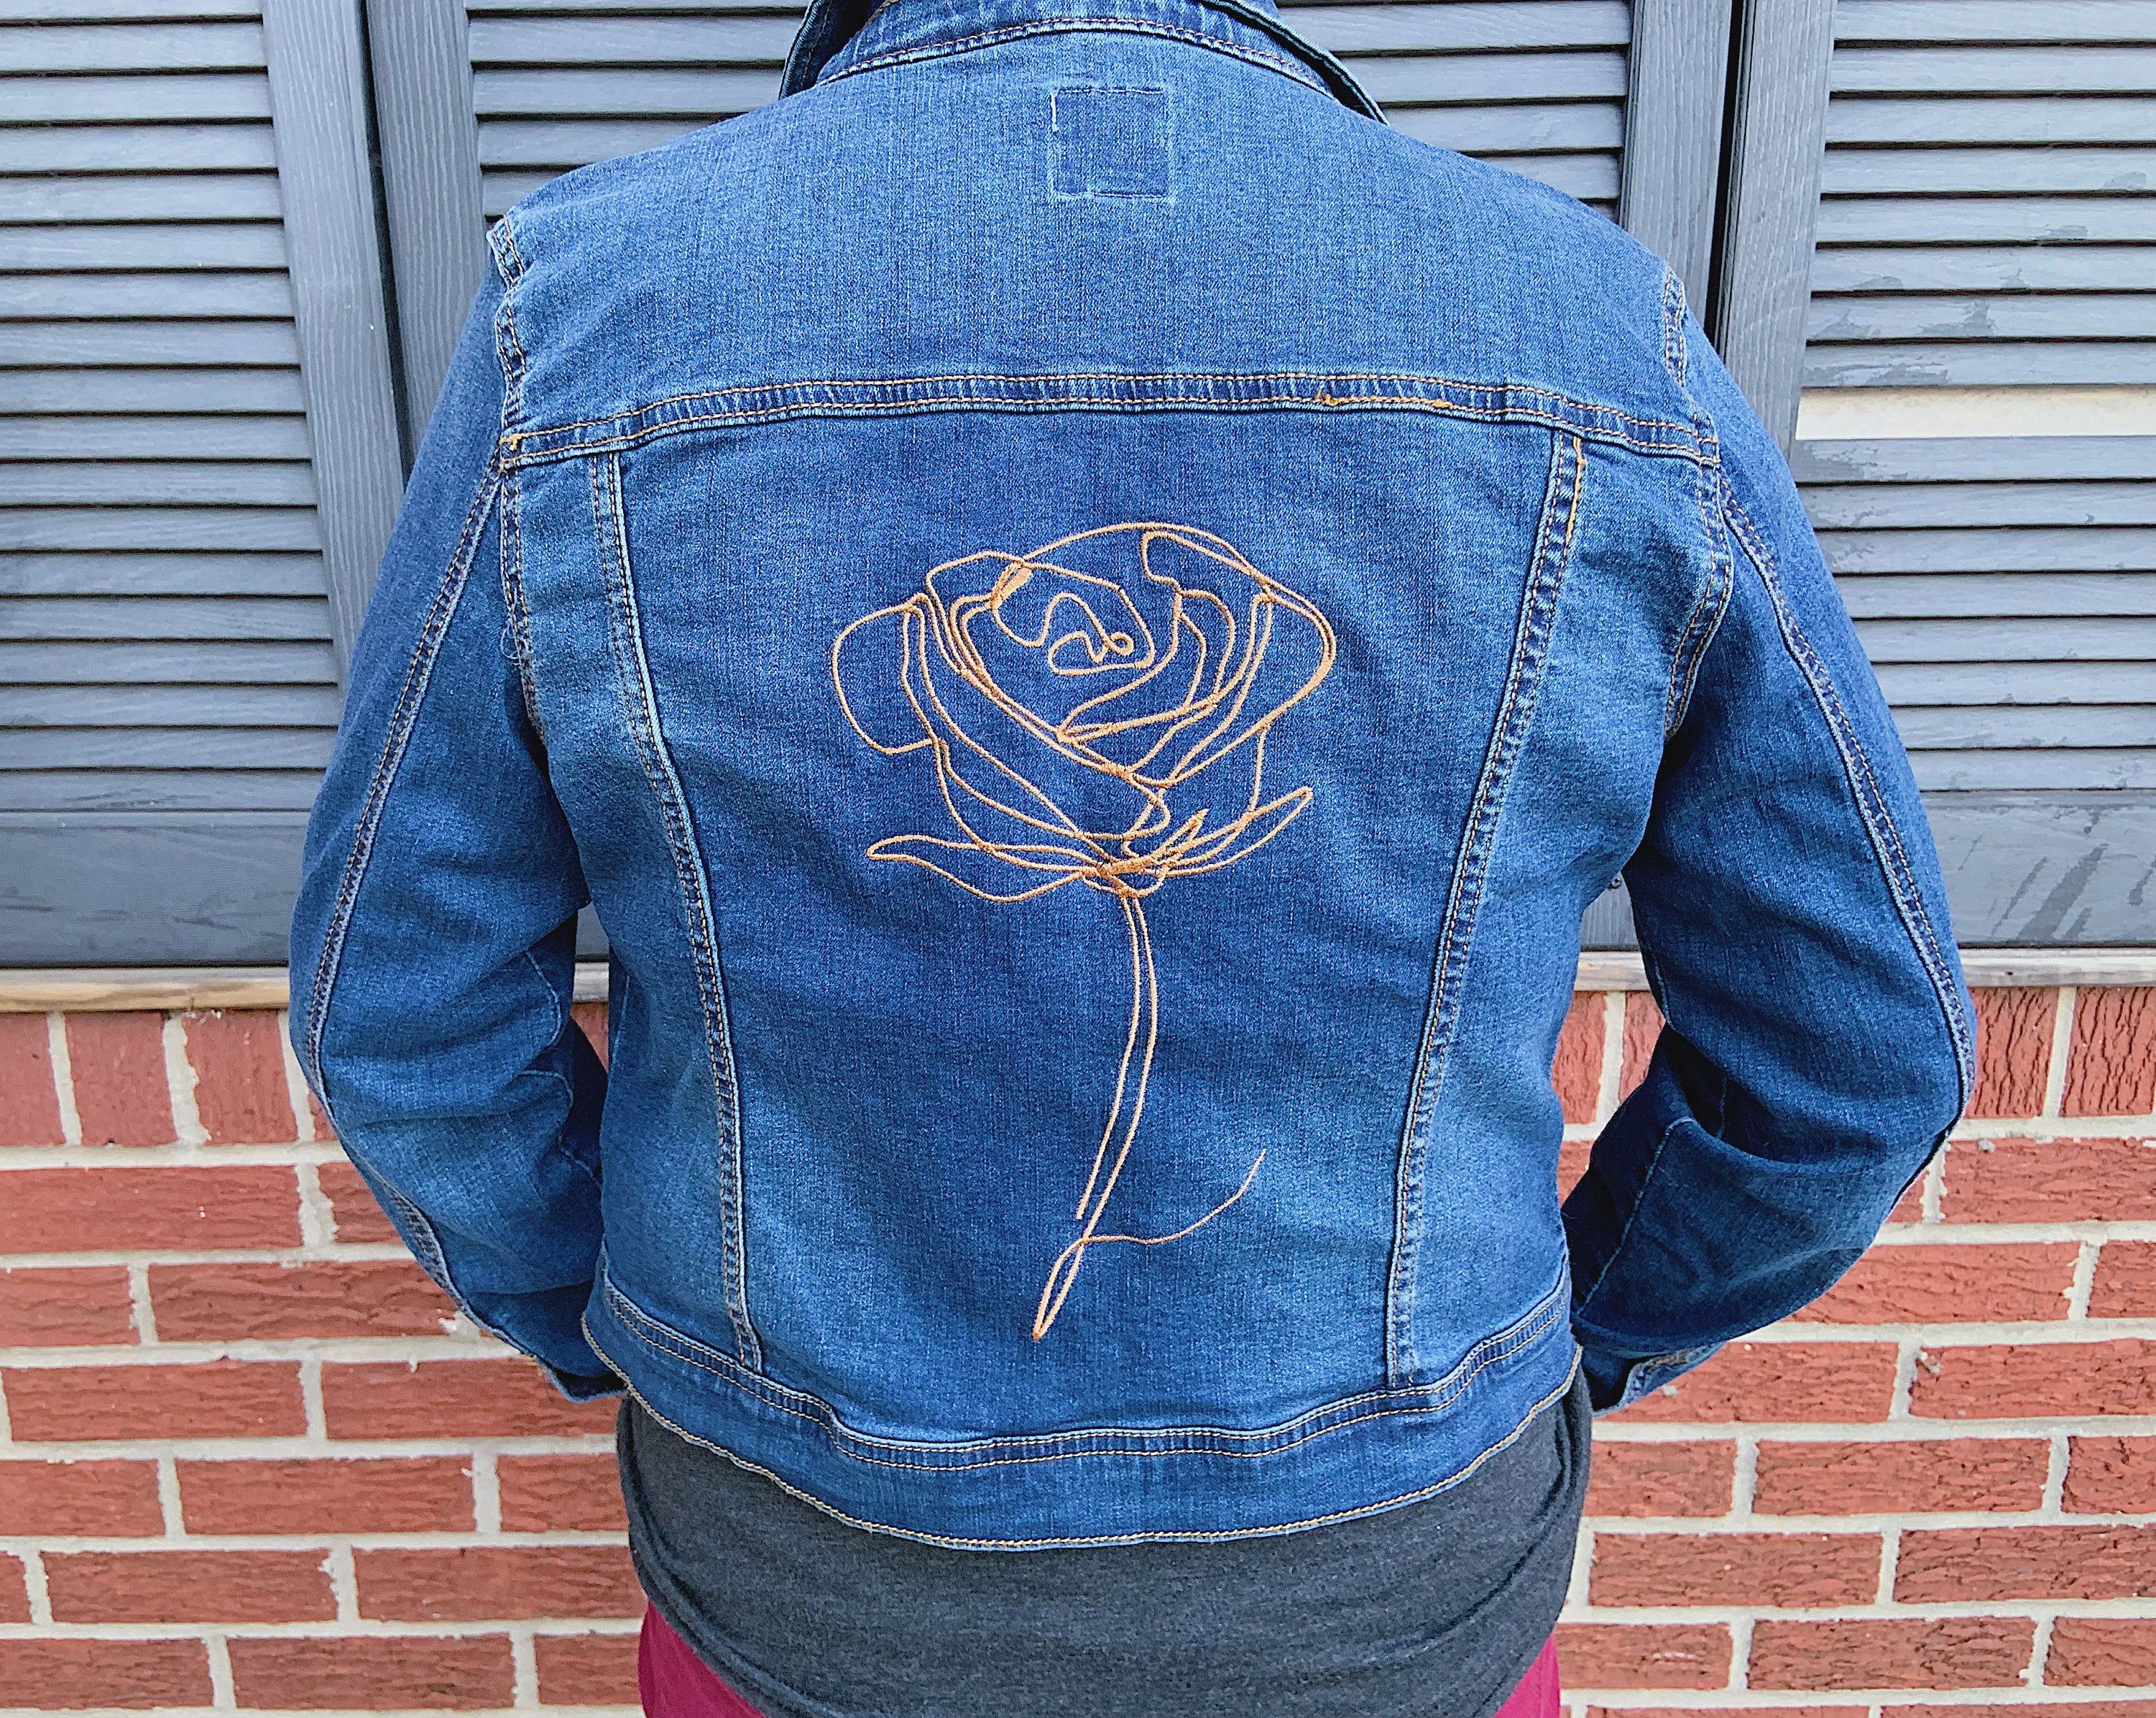 Rose Embroidered Jean Jacket Beautiful Shimmery Rose Gold Thread Rose Embroidered Jeans Embroidered Jean Jacket Rose Embroidered Jacket [ 2390 x 3000 Pixel ]